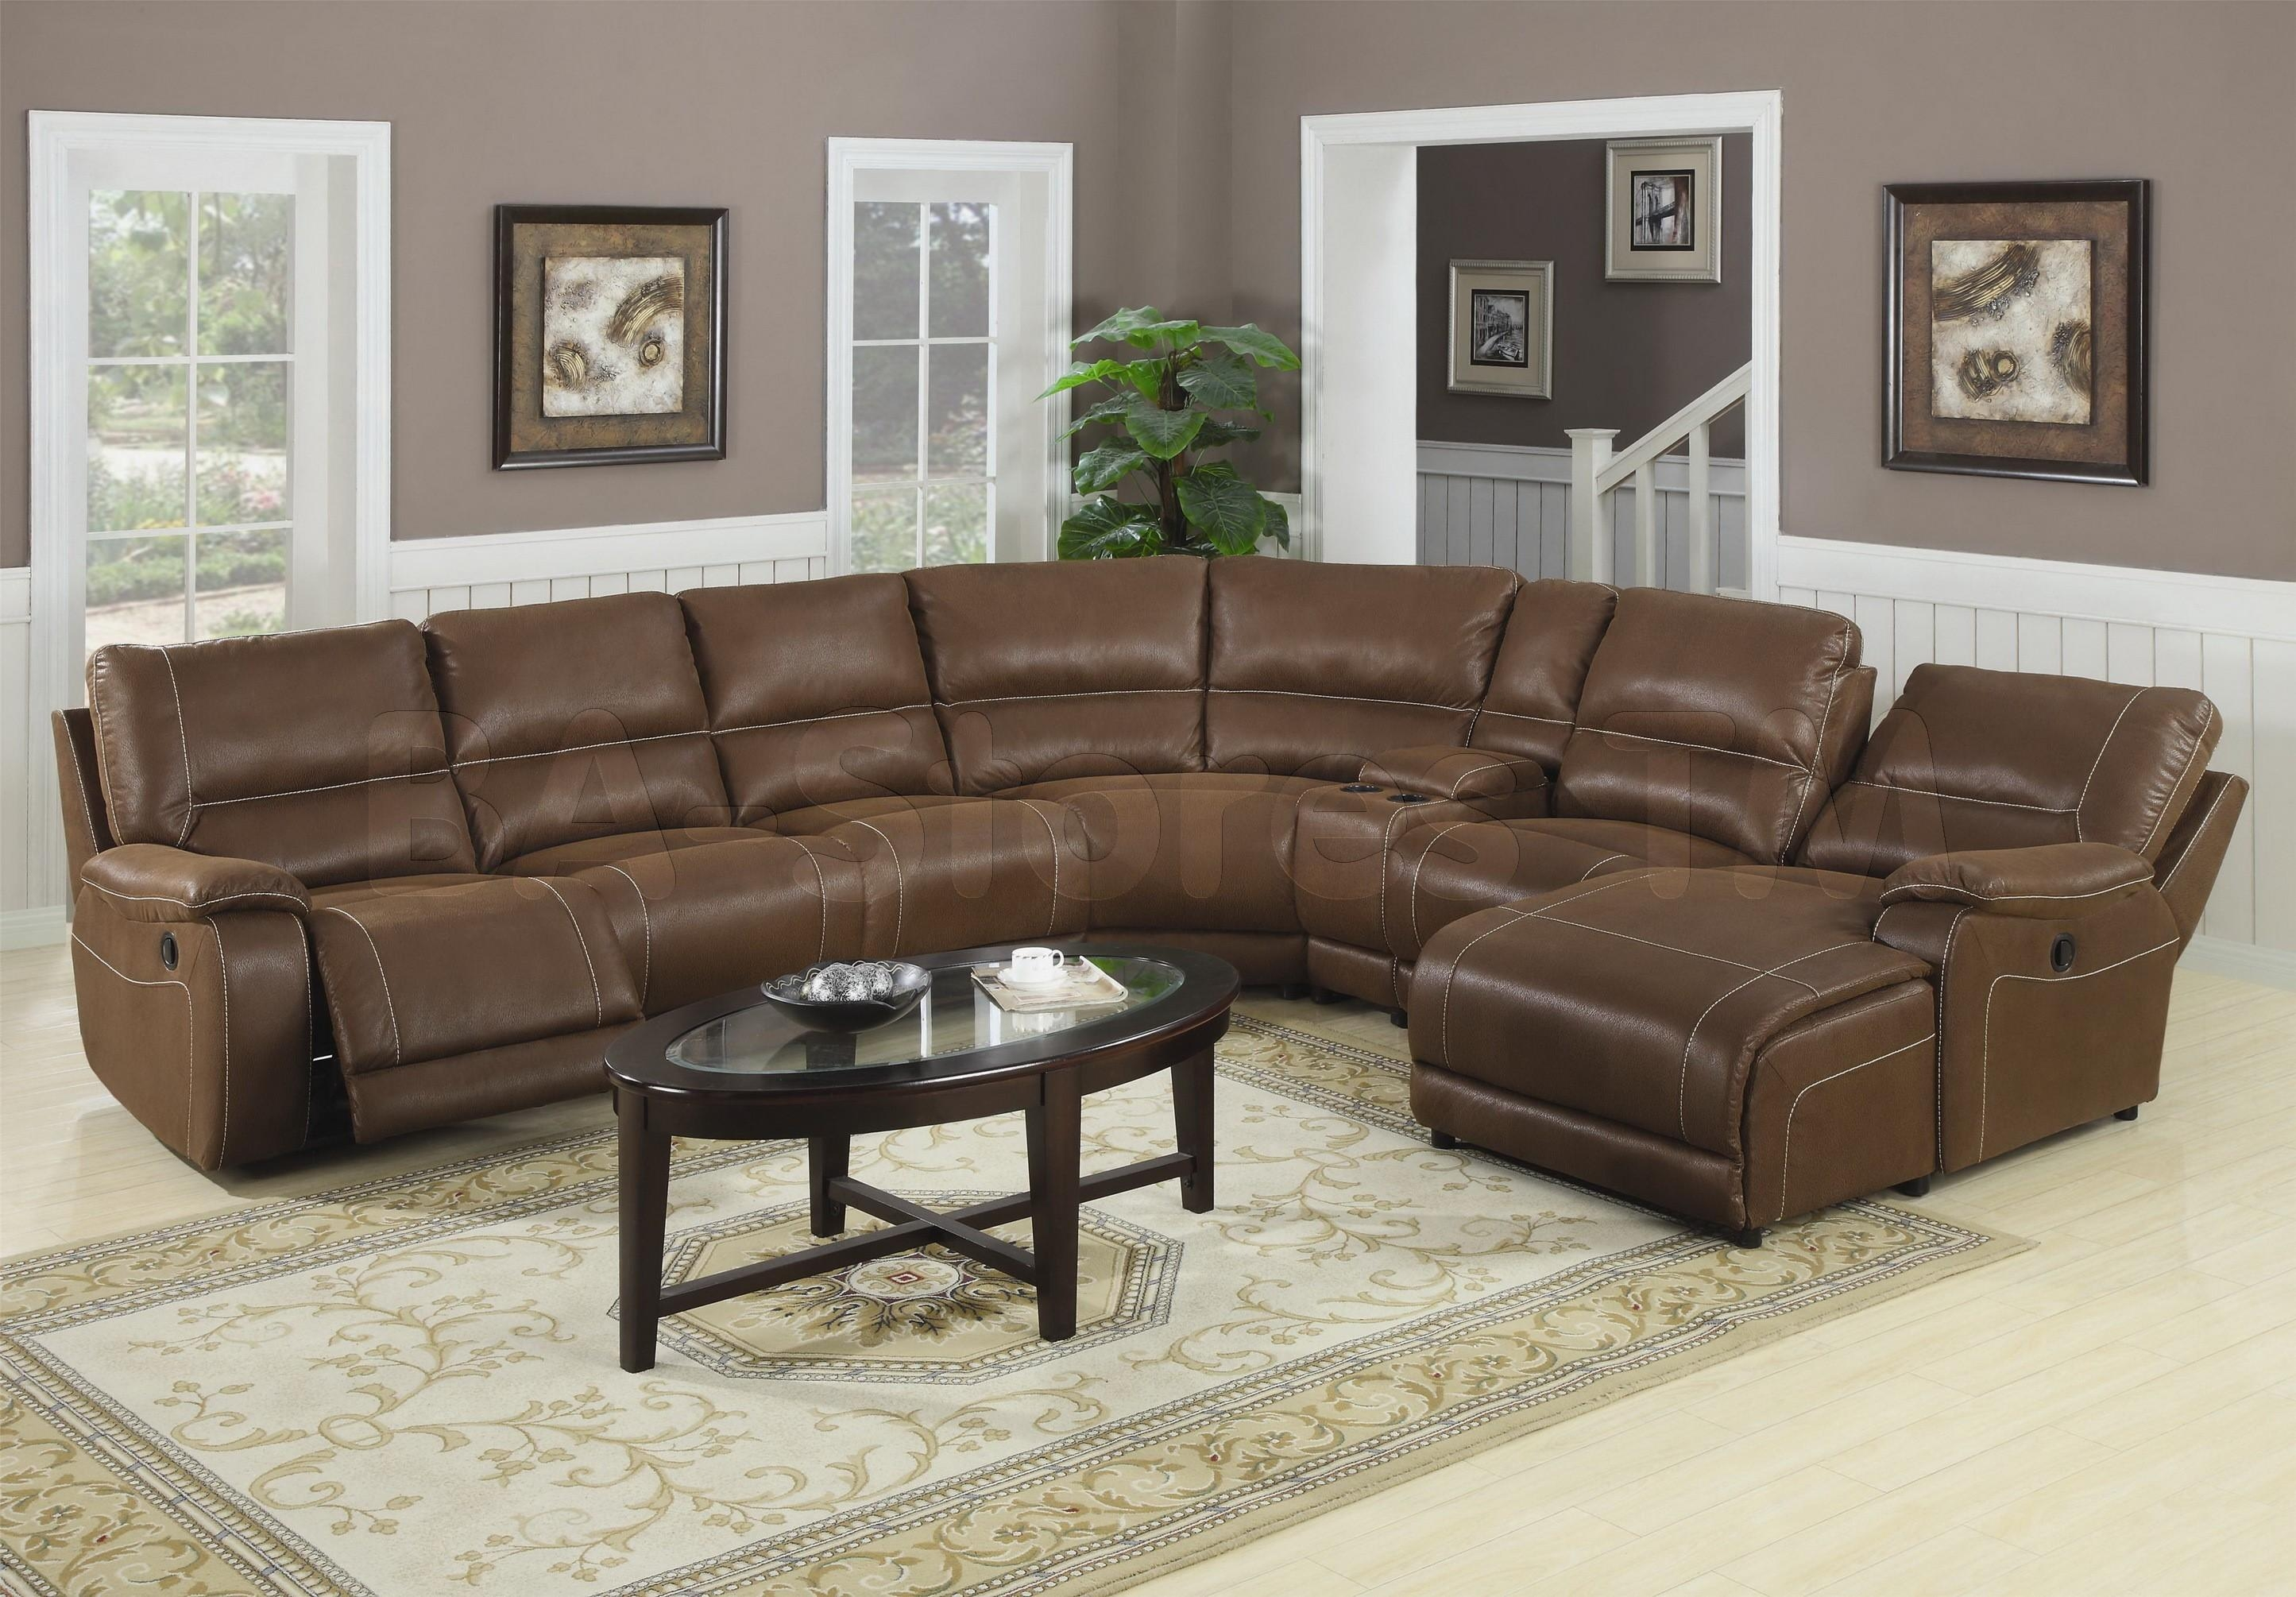 Decorating: Fill Your Home With Comfy Costco Sectionals Sofa For With Berkline Sectional Sofas (View 11 of 20)